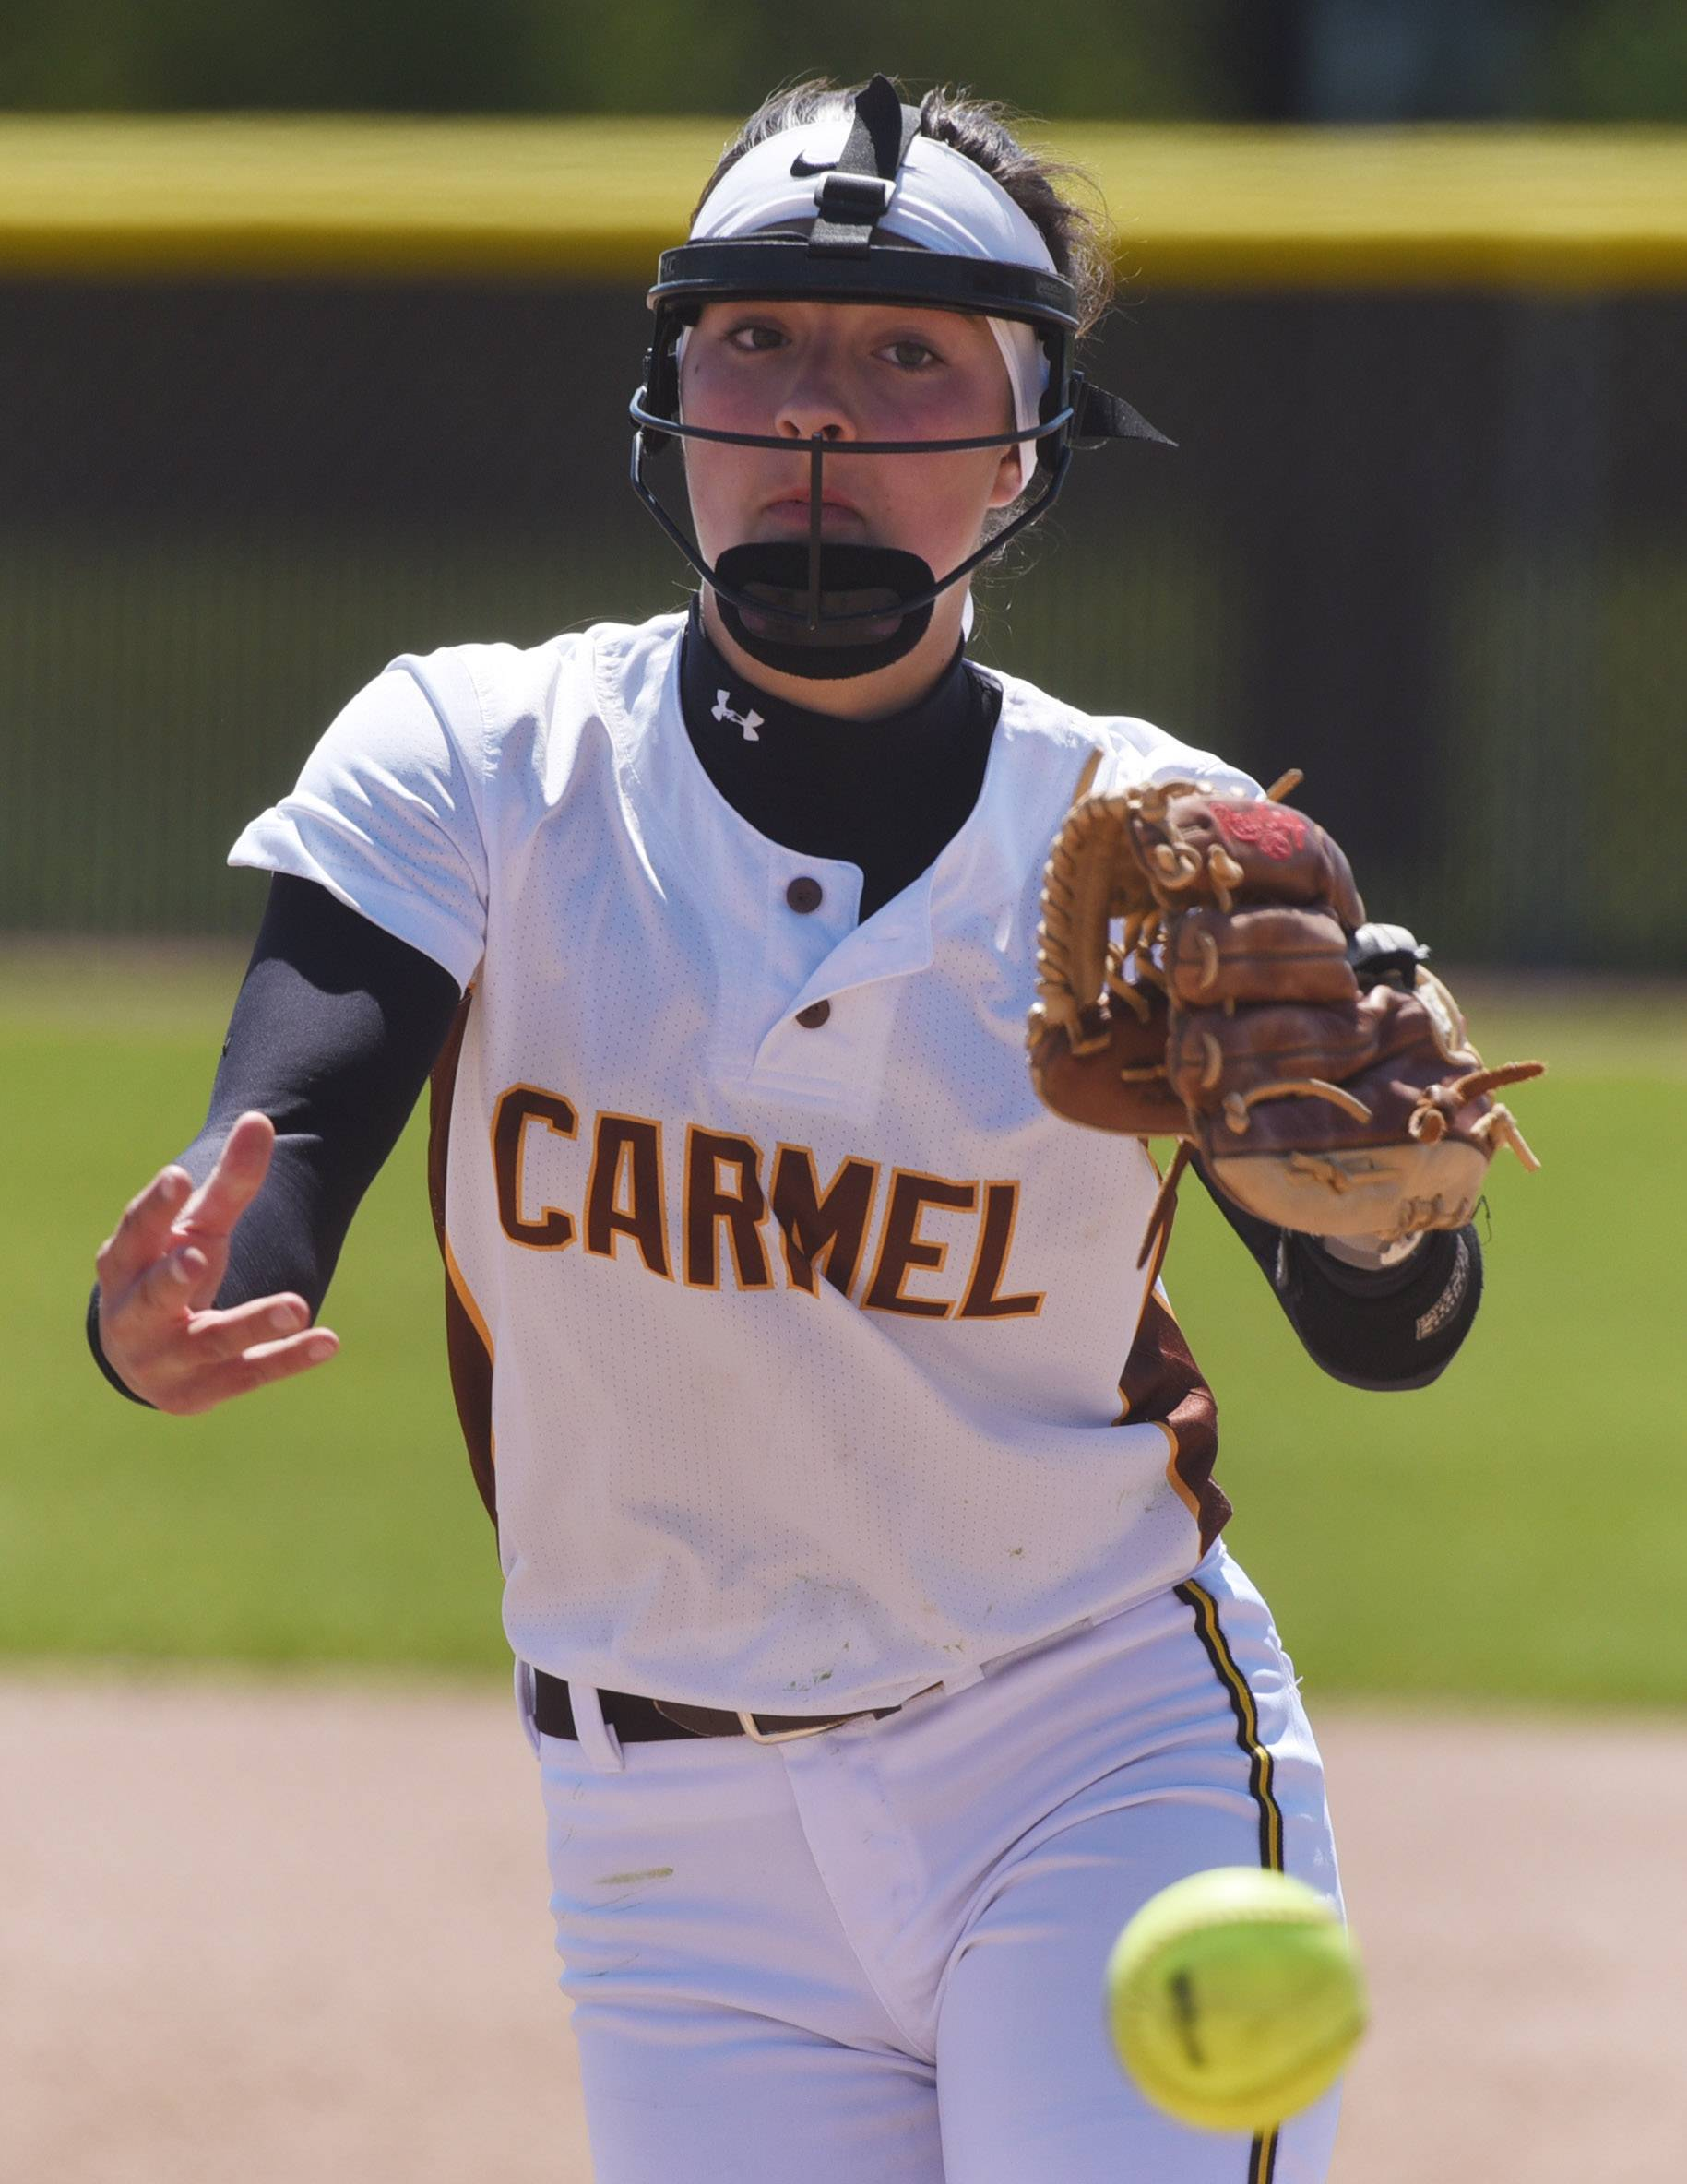 Carmel pitcher Marla Walinski delivers against Nazareth during Saturday's doubleheader in Mundelein.